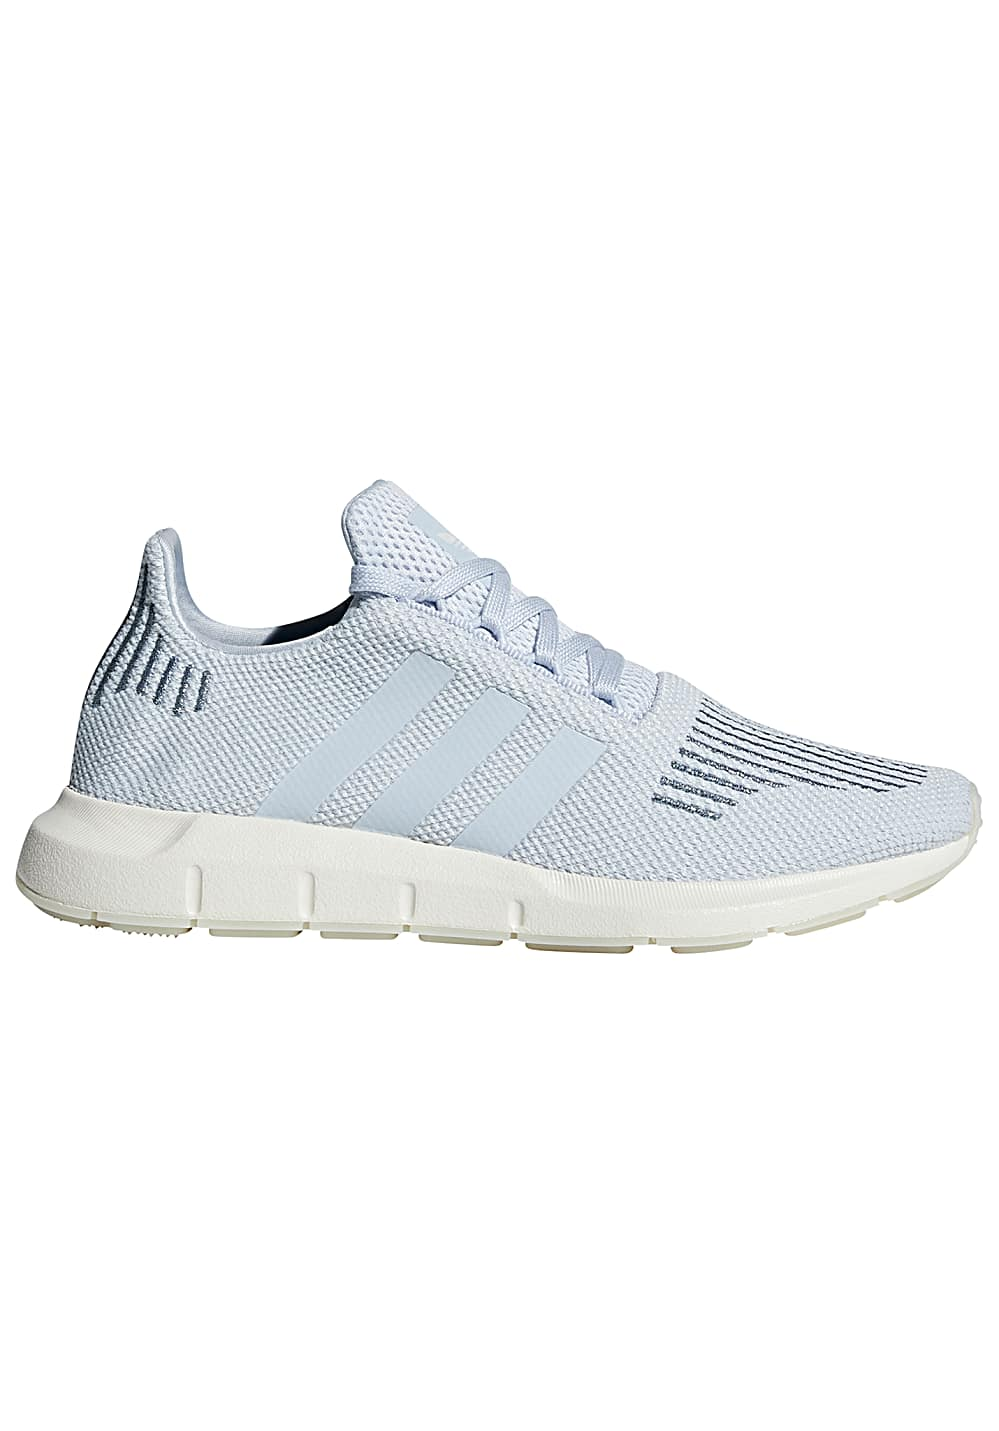 Für Damen Originals Adidas Run Sneaker Swift Blau UzSVpLqMG